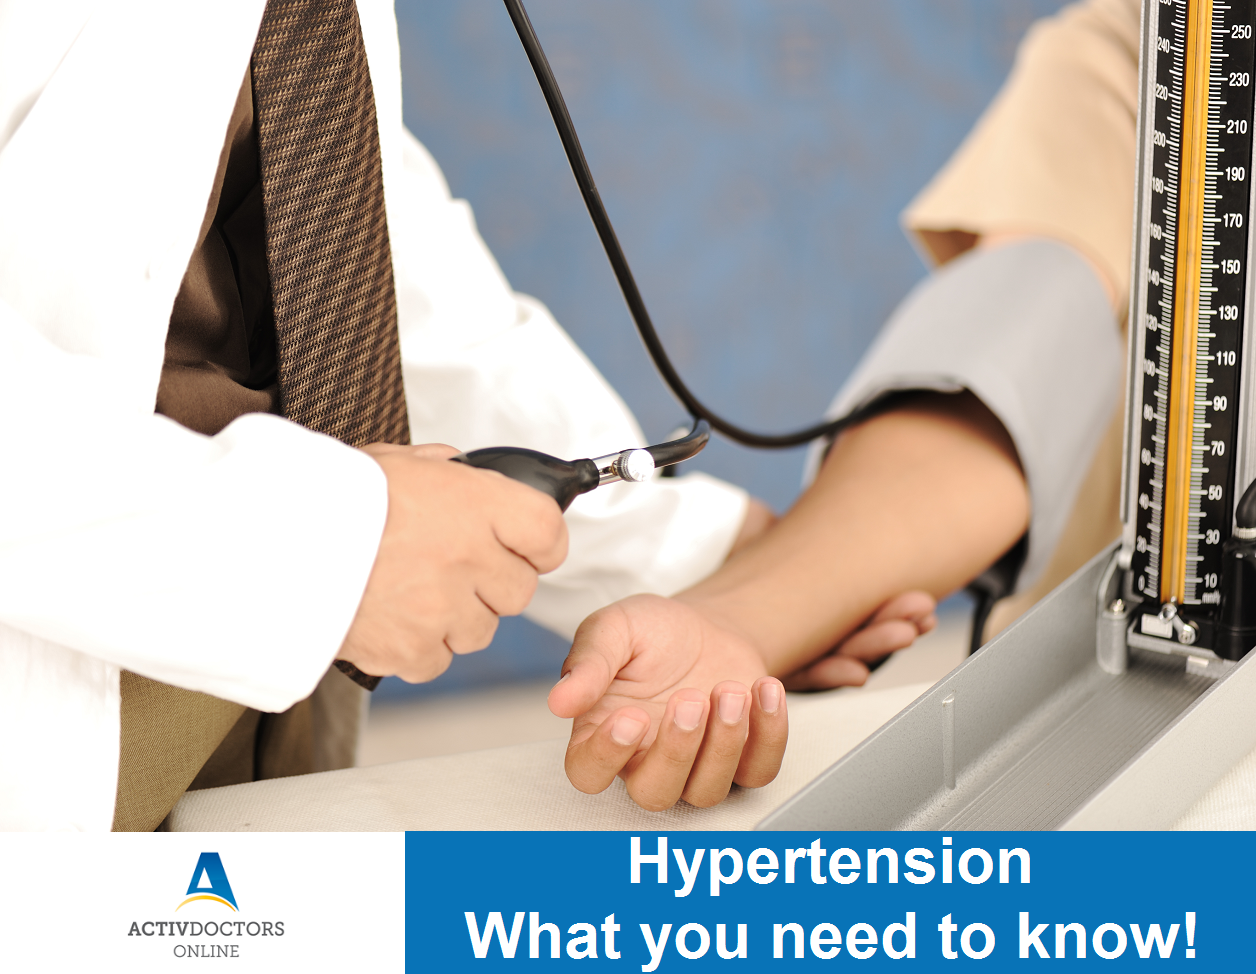 HYPERTENSION – What you need to know!